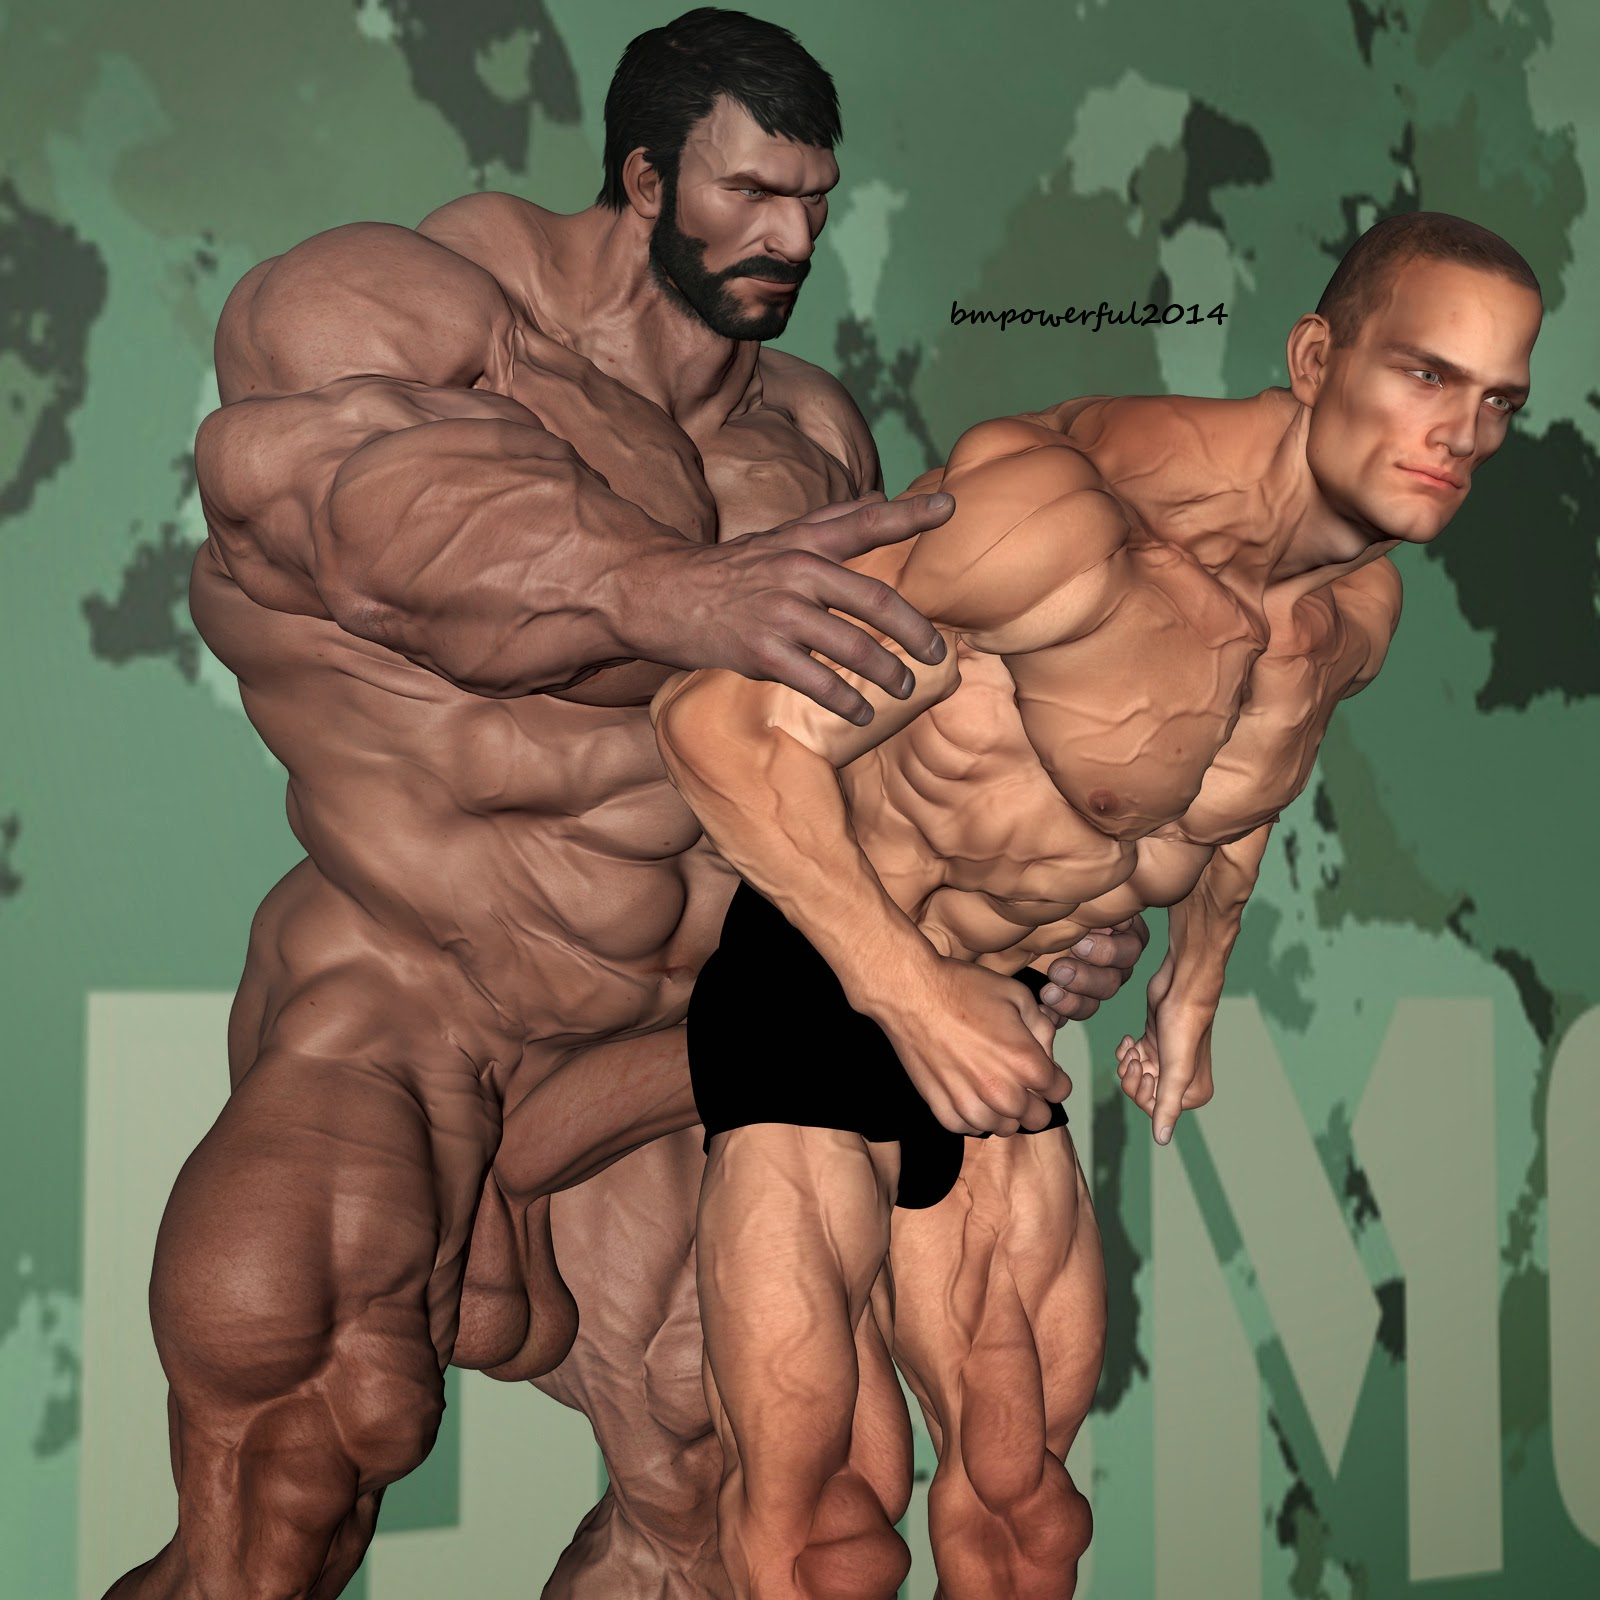 3D Muscle Sex 3d gay erotic muscle art: 2014